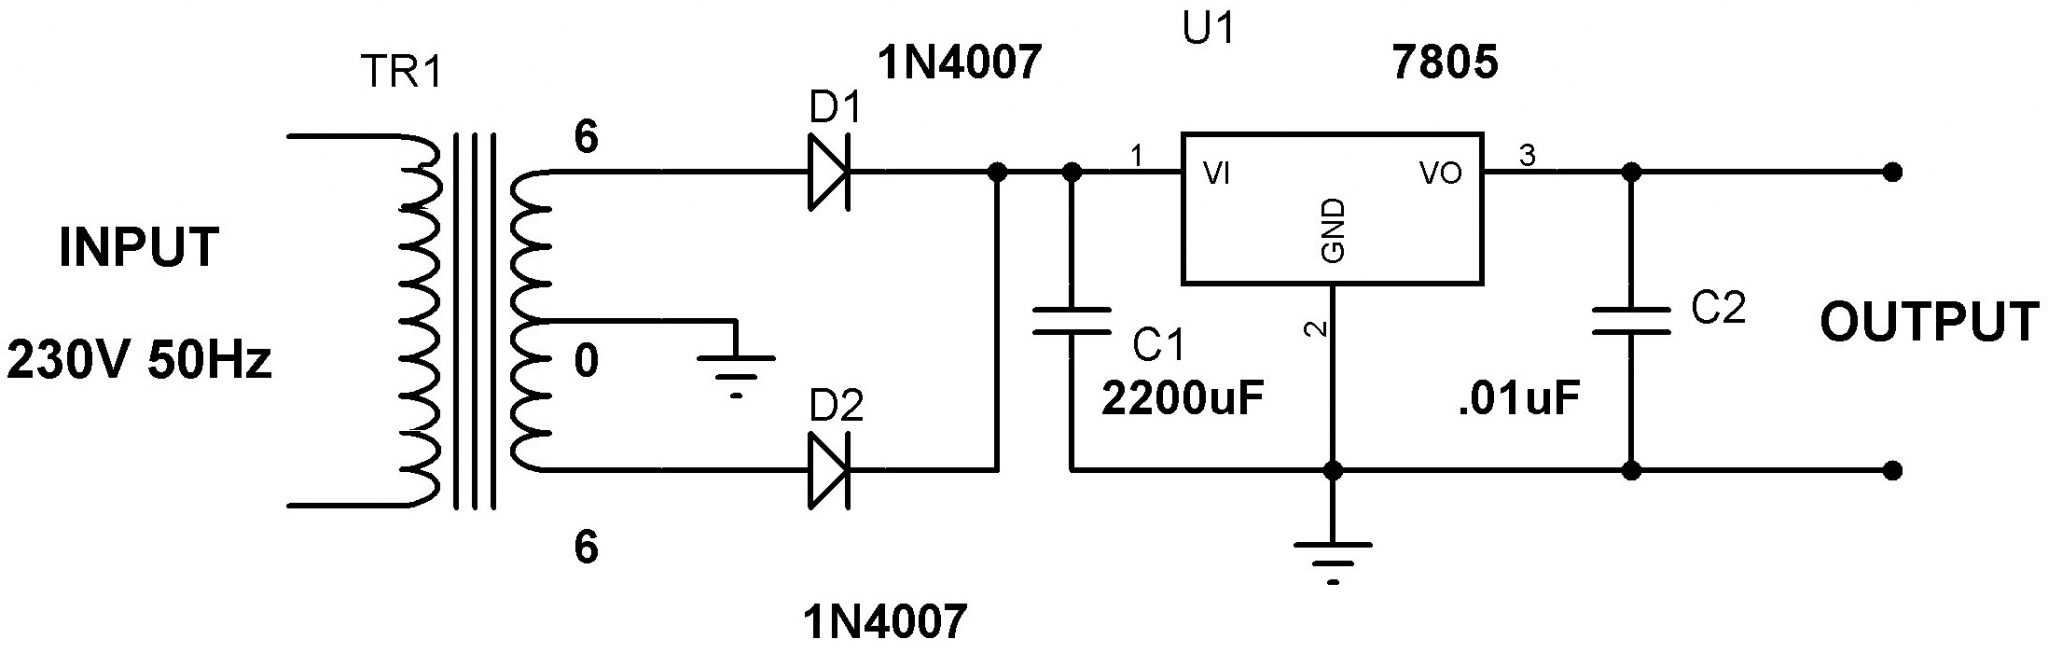 78xx Voltage Regulators Circuit Diagram Wiring Online Simultaneouscurrentlimiting Powersupplycircuit 5v Power Supply Using 7805 Regulator With Design